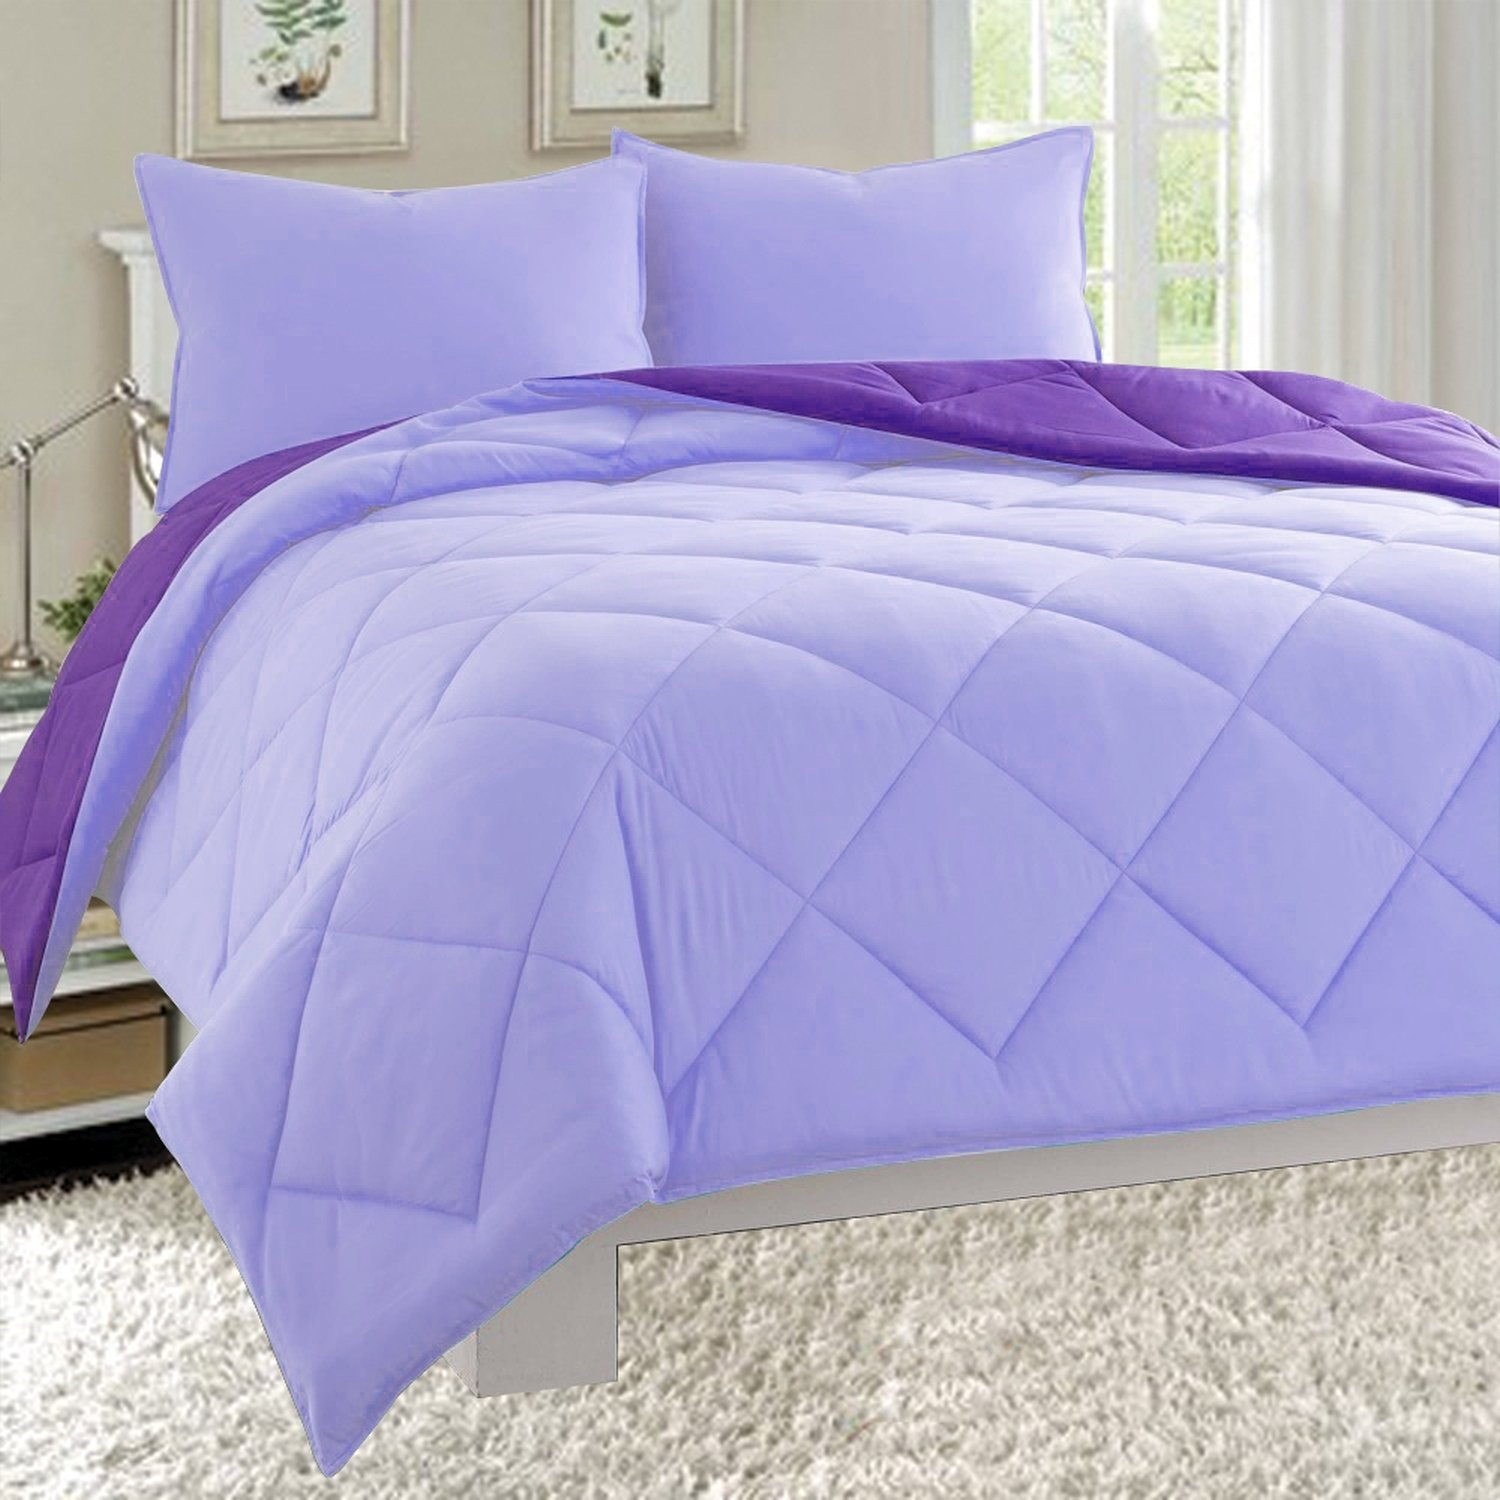 Comforter Set, Full/Queen, Lavender/Purple